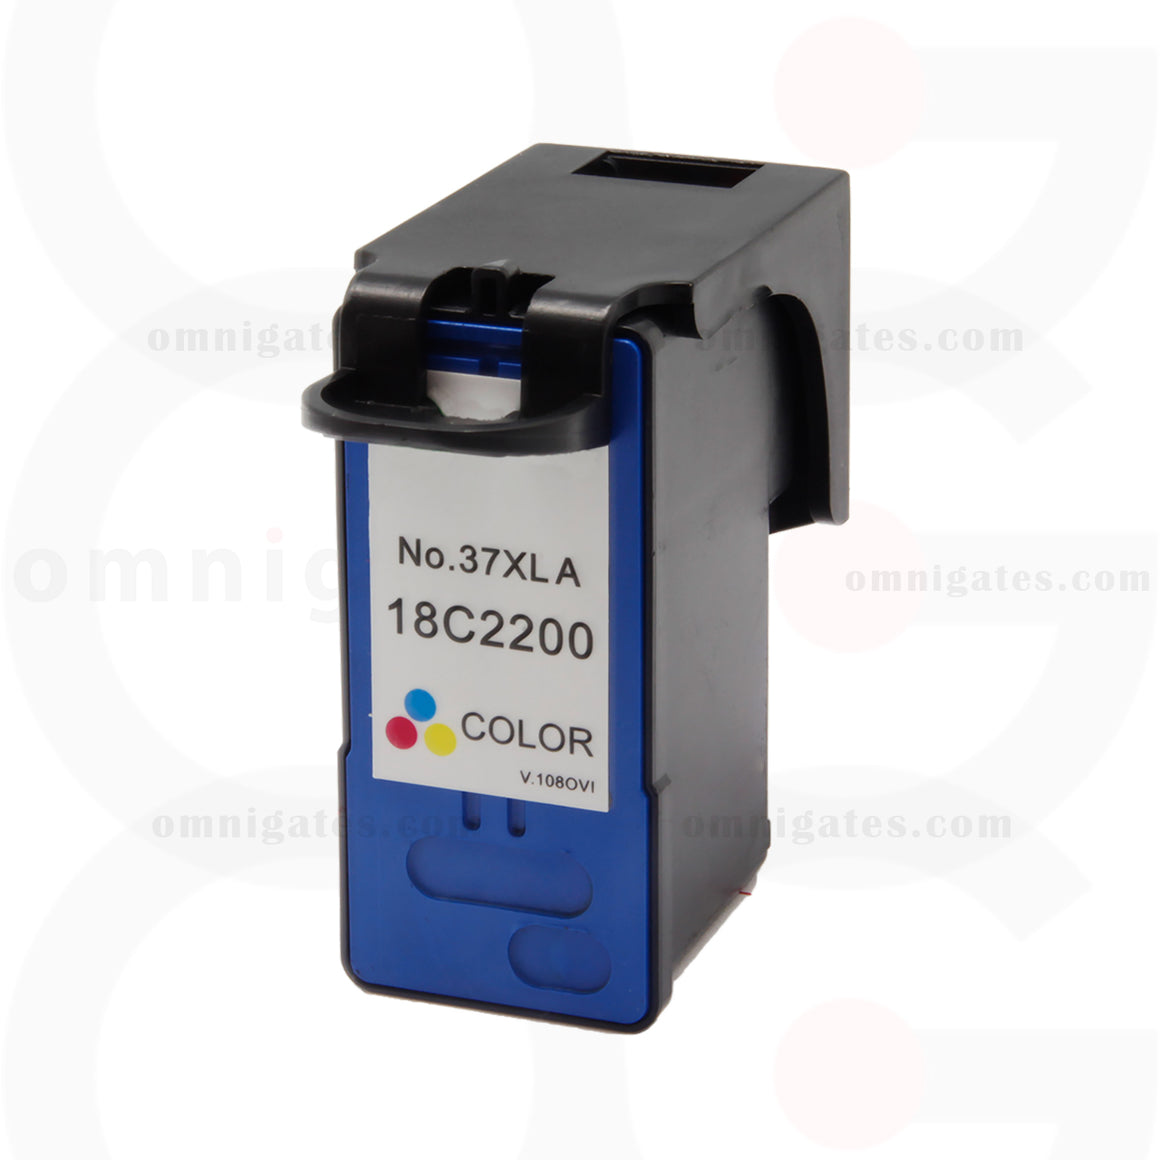 Color OGP Remanufactured Lexmark 18C2200 Inkjet Cartridge